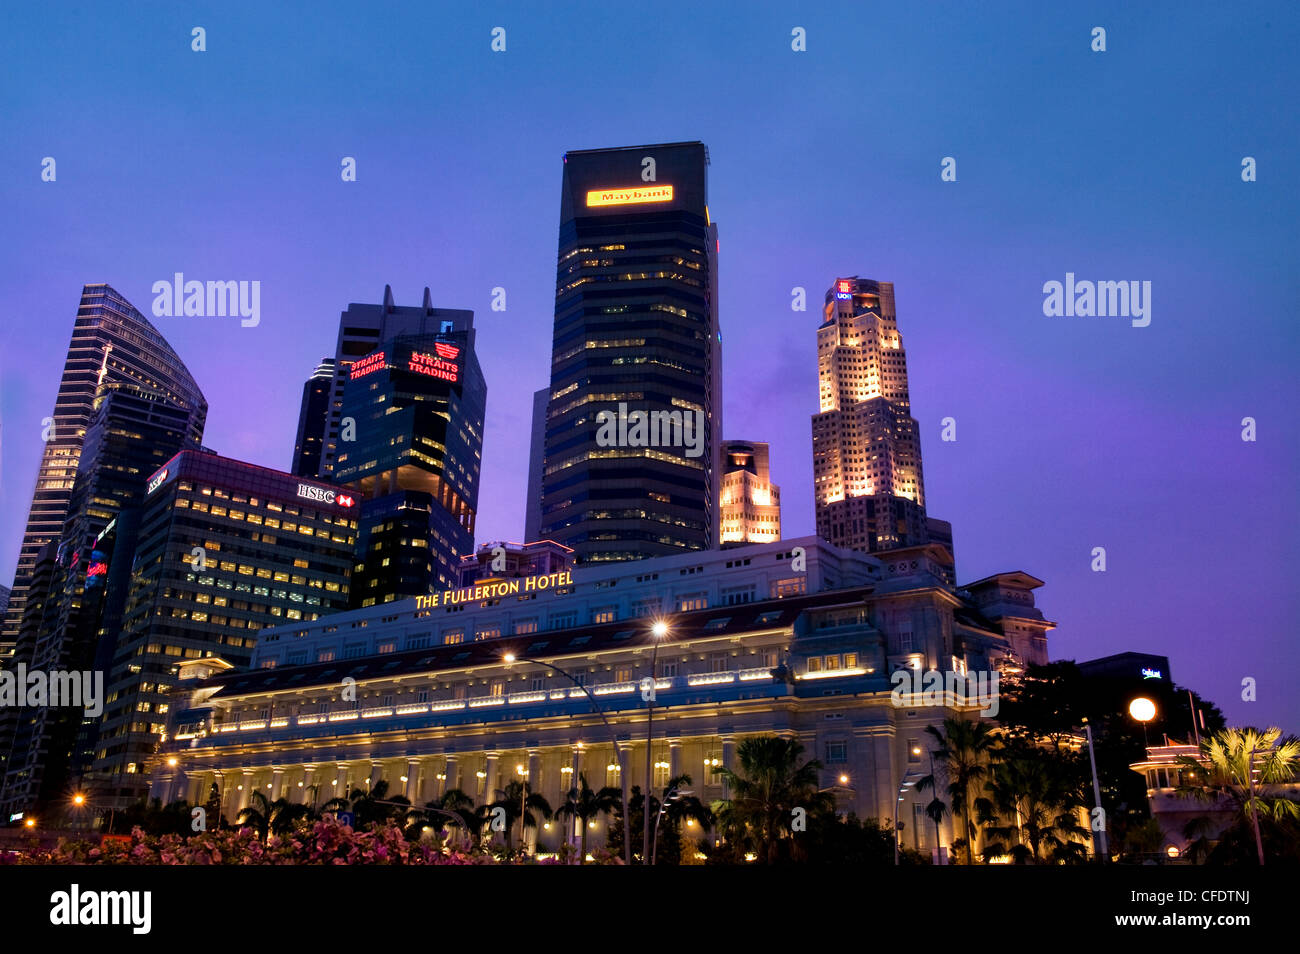 Skyline of the banking district of Singapore with Fullerton Hotel, Singapore, Southeast Asia, Asia - Stock Image